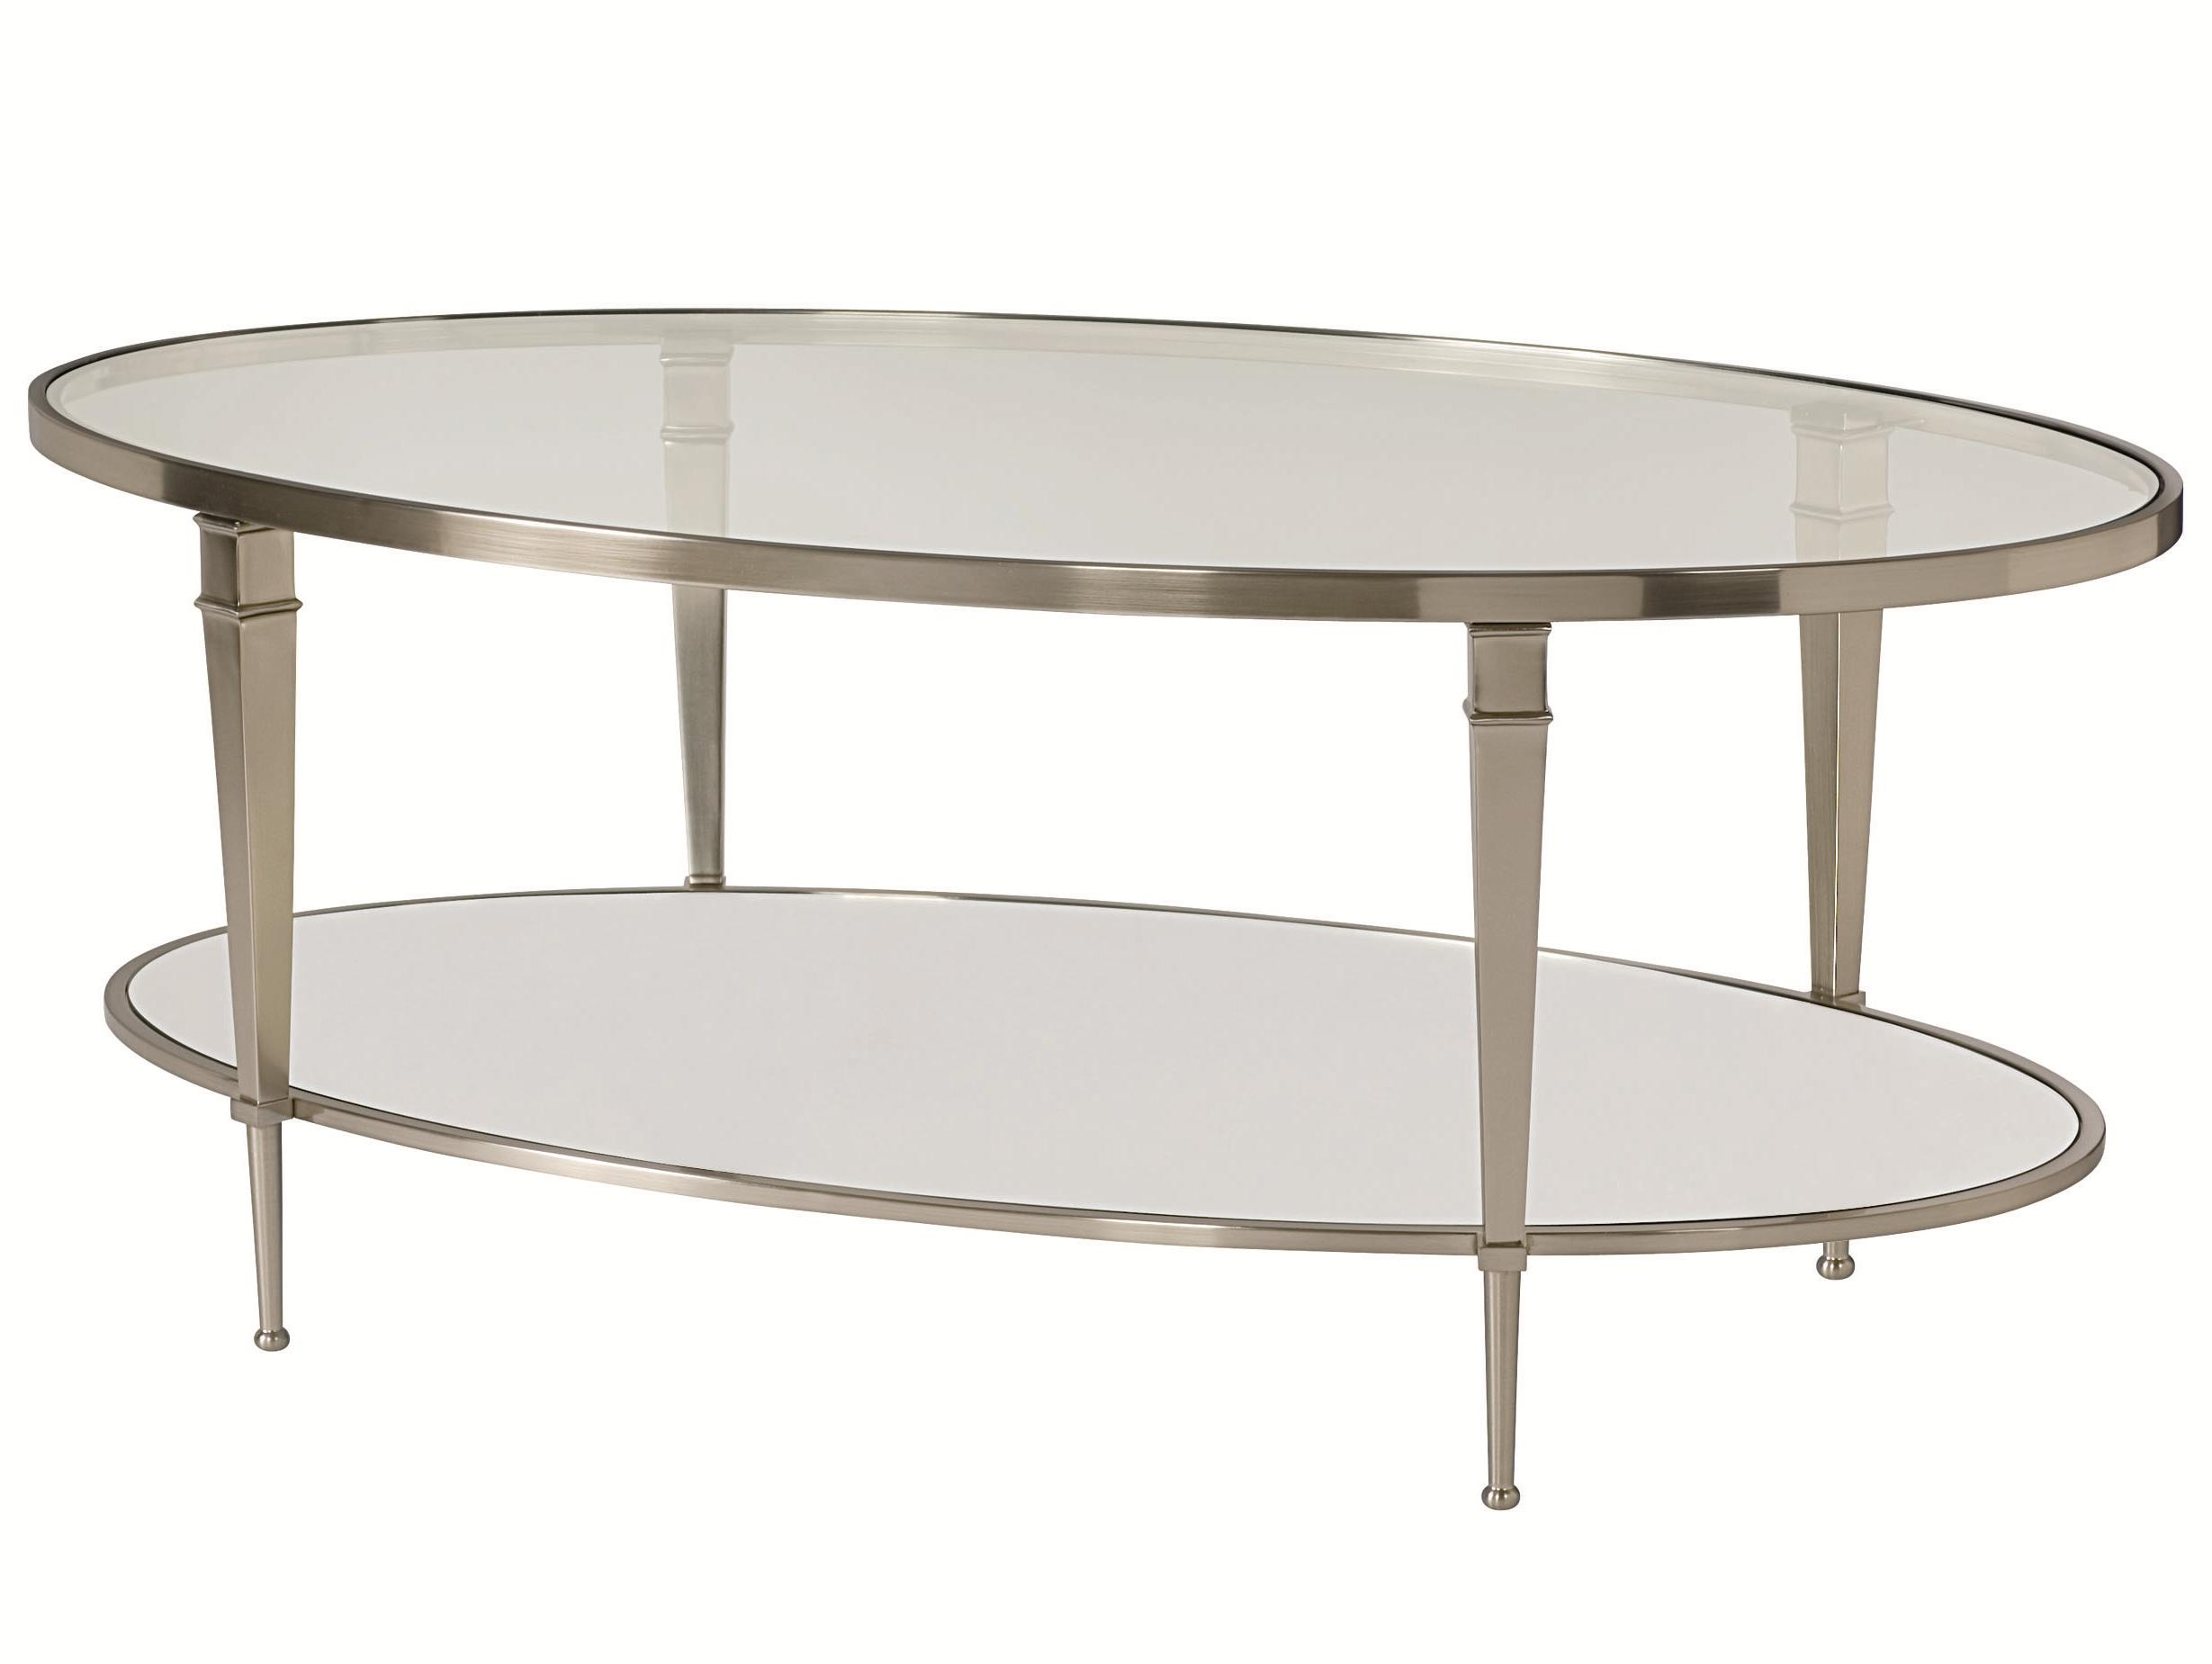 Oval satin nickel antique mirror finish cocktail table by for Coffee tables york pa